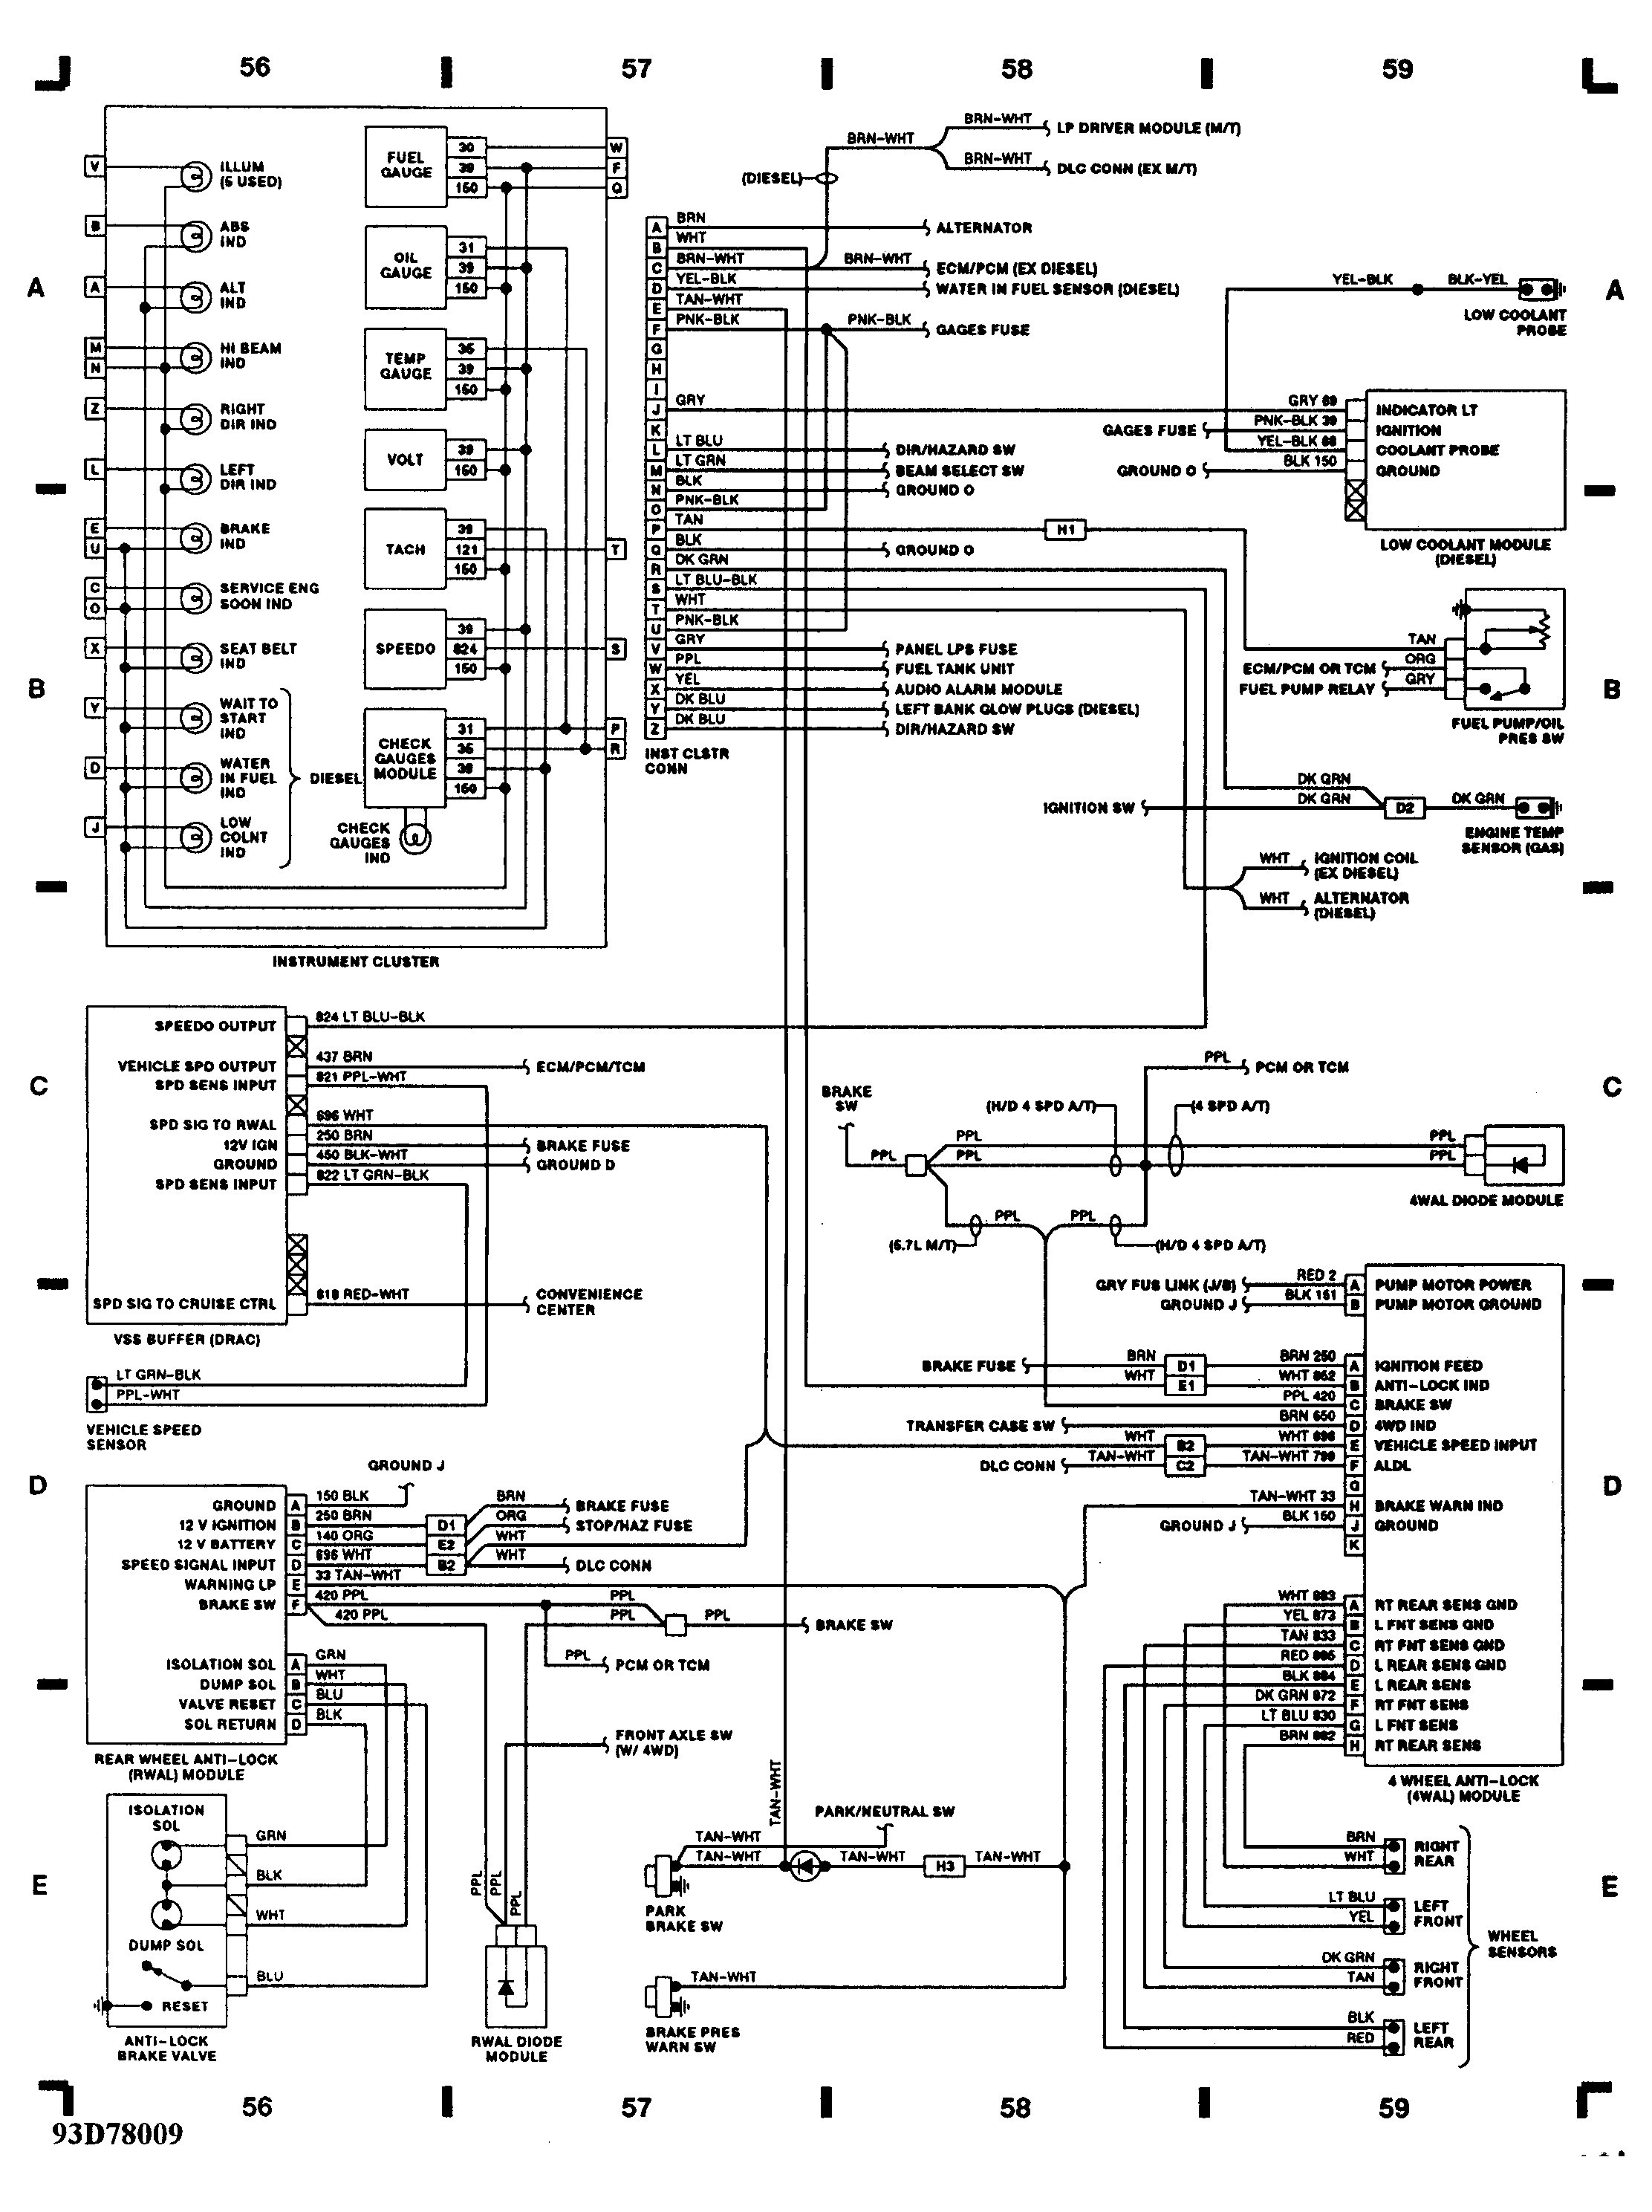 2000 Lincoln Ls Engine Diagram Fuel System Wiring Info Schematics For 05 5 7 Vortec 4 3l